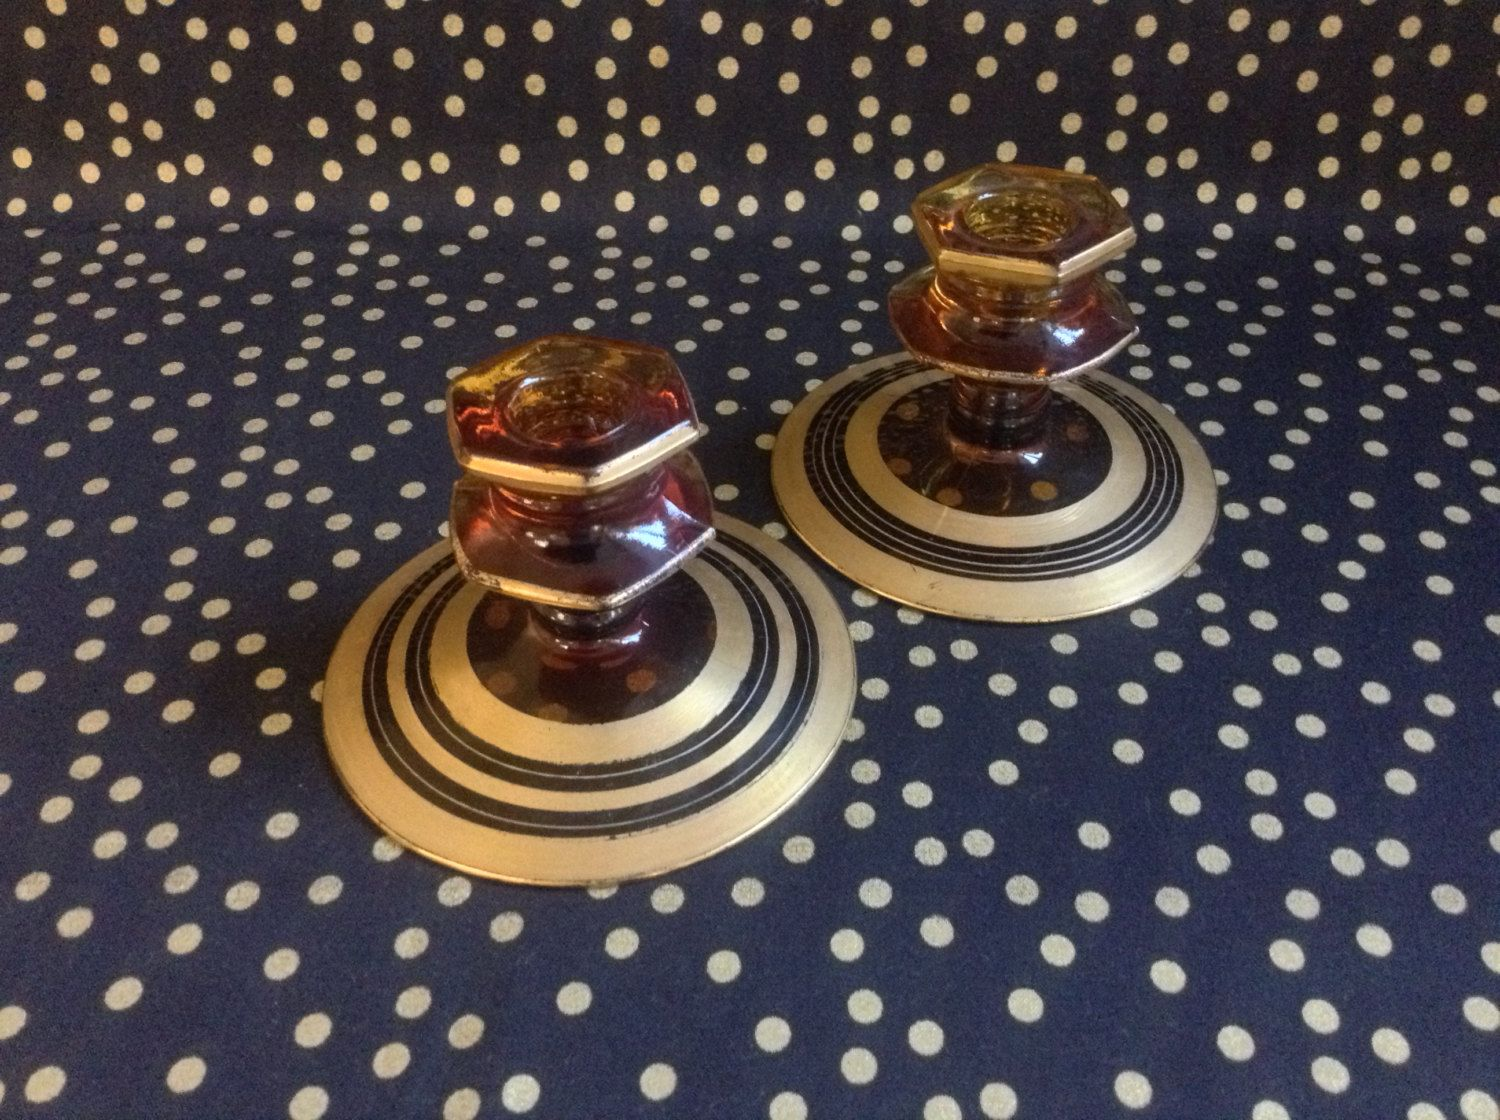 Tread Candle~Lightly~Gilded~Amber Glass~Candle Stick Holders~Set of 2~Taper by RubyJeanRummage on Etsy